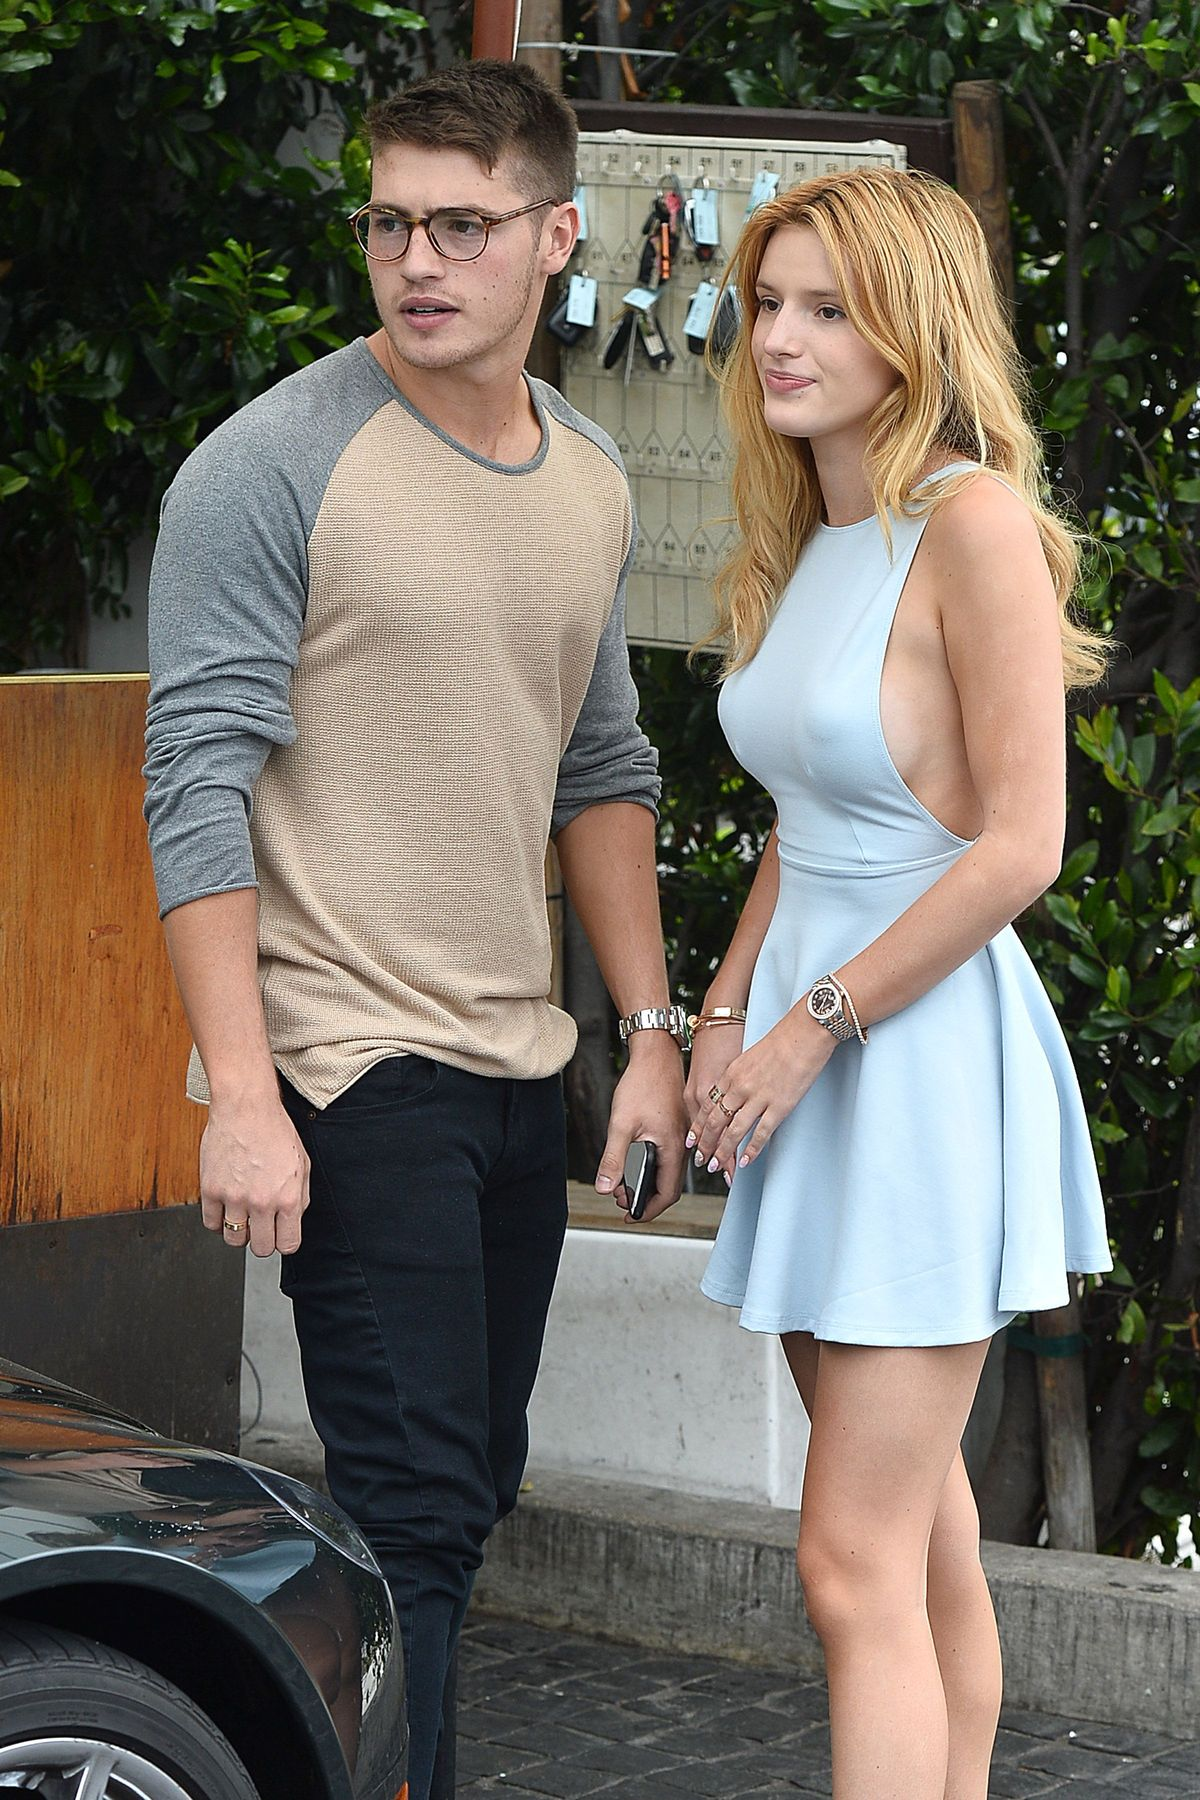 Bella Thorne Braless 39 TheFappening.nu